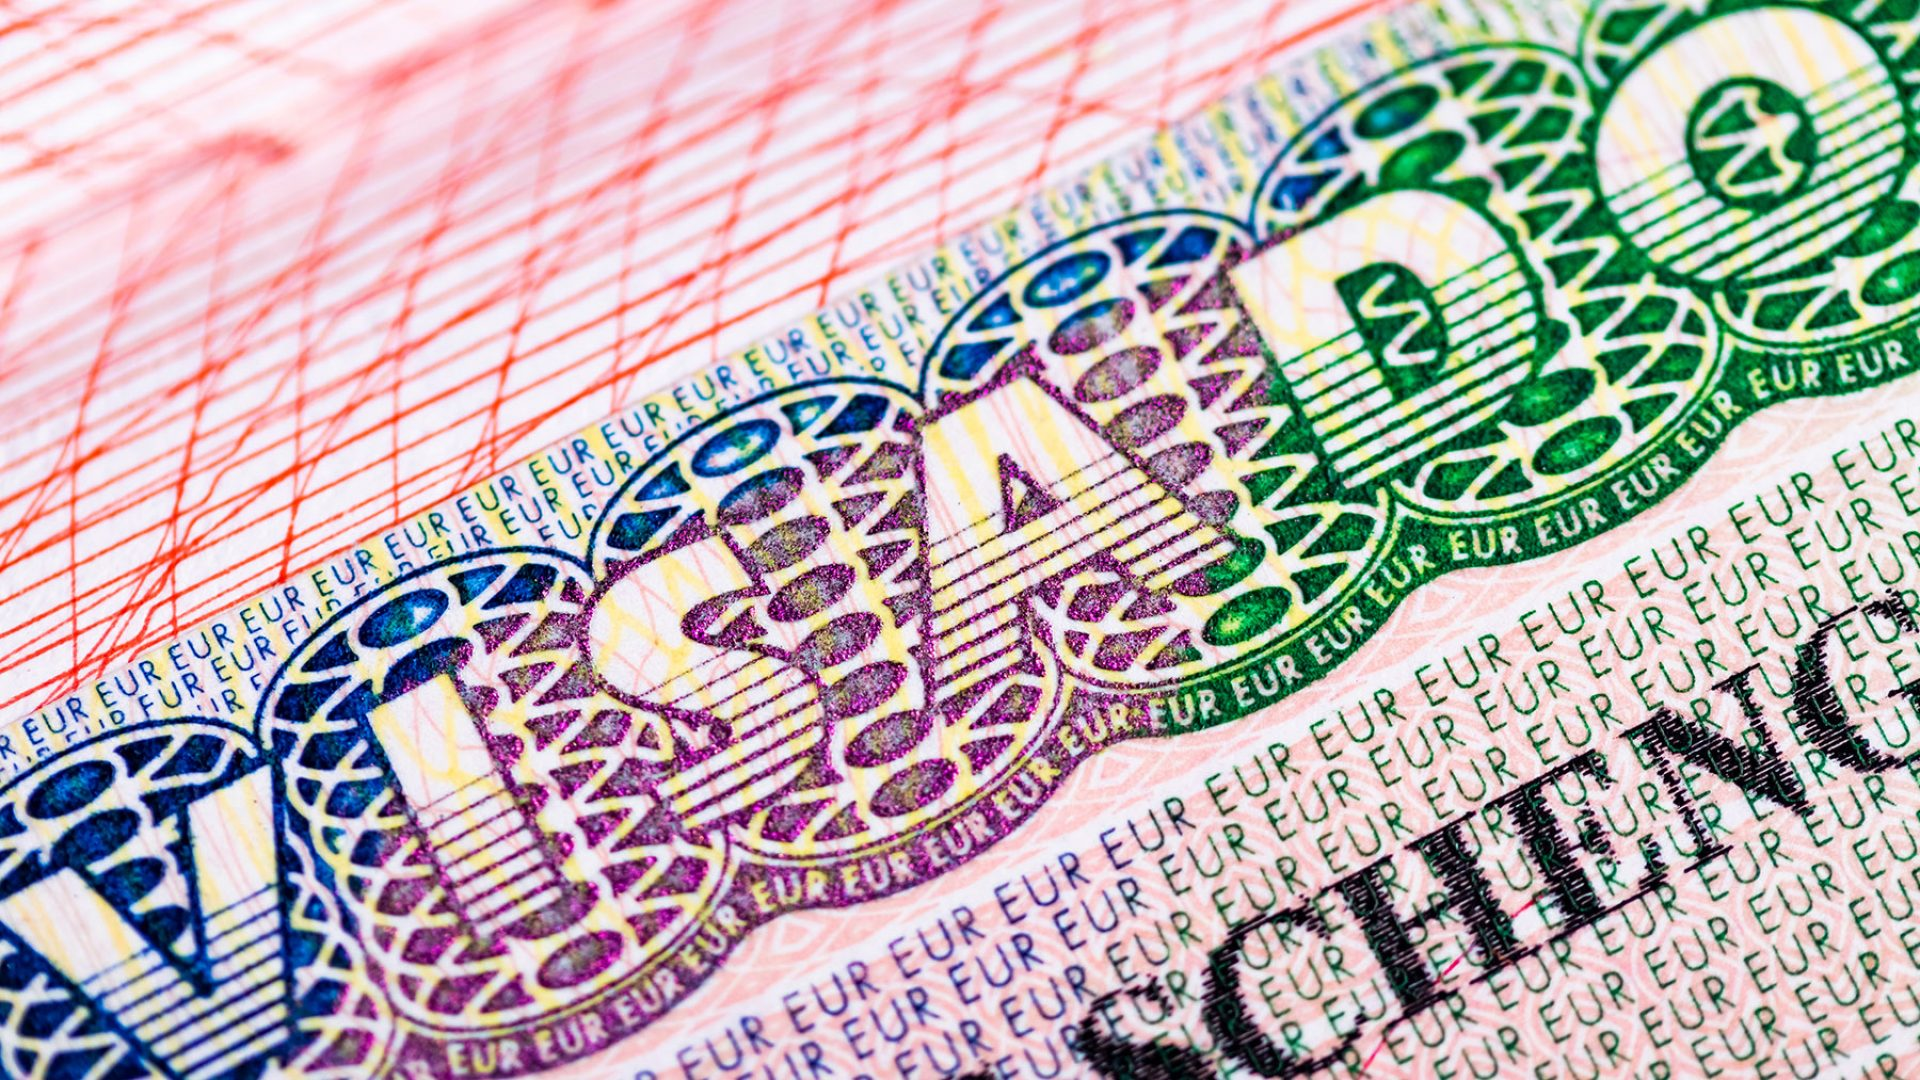 Visas and immigration in Spain